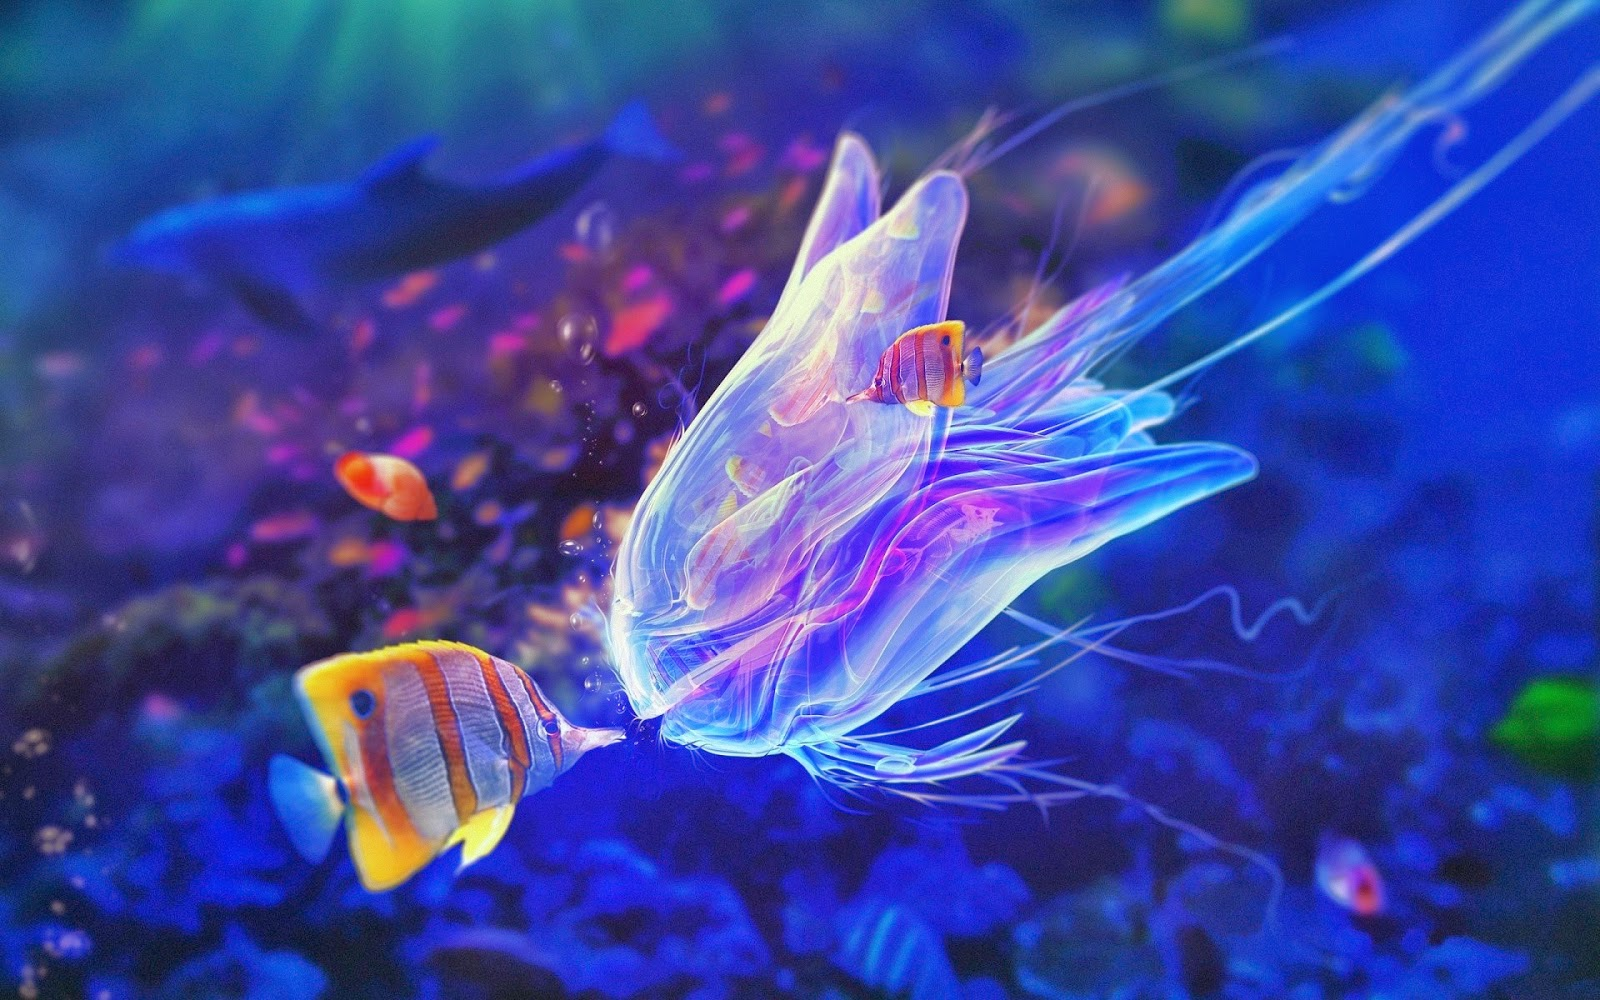 underwater-glowing-sea-fish-pictures-HD-download.jpg